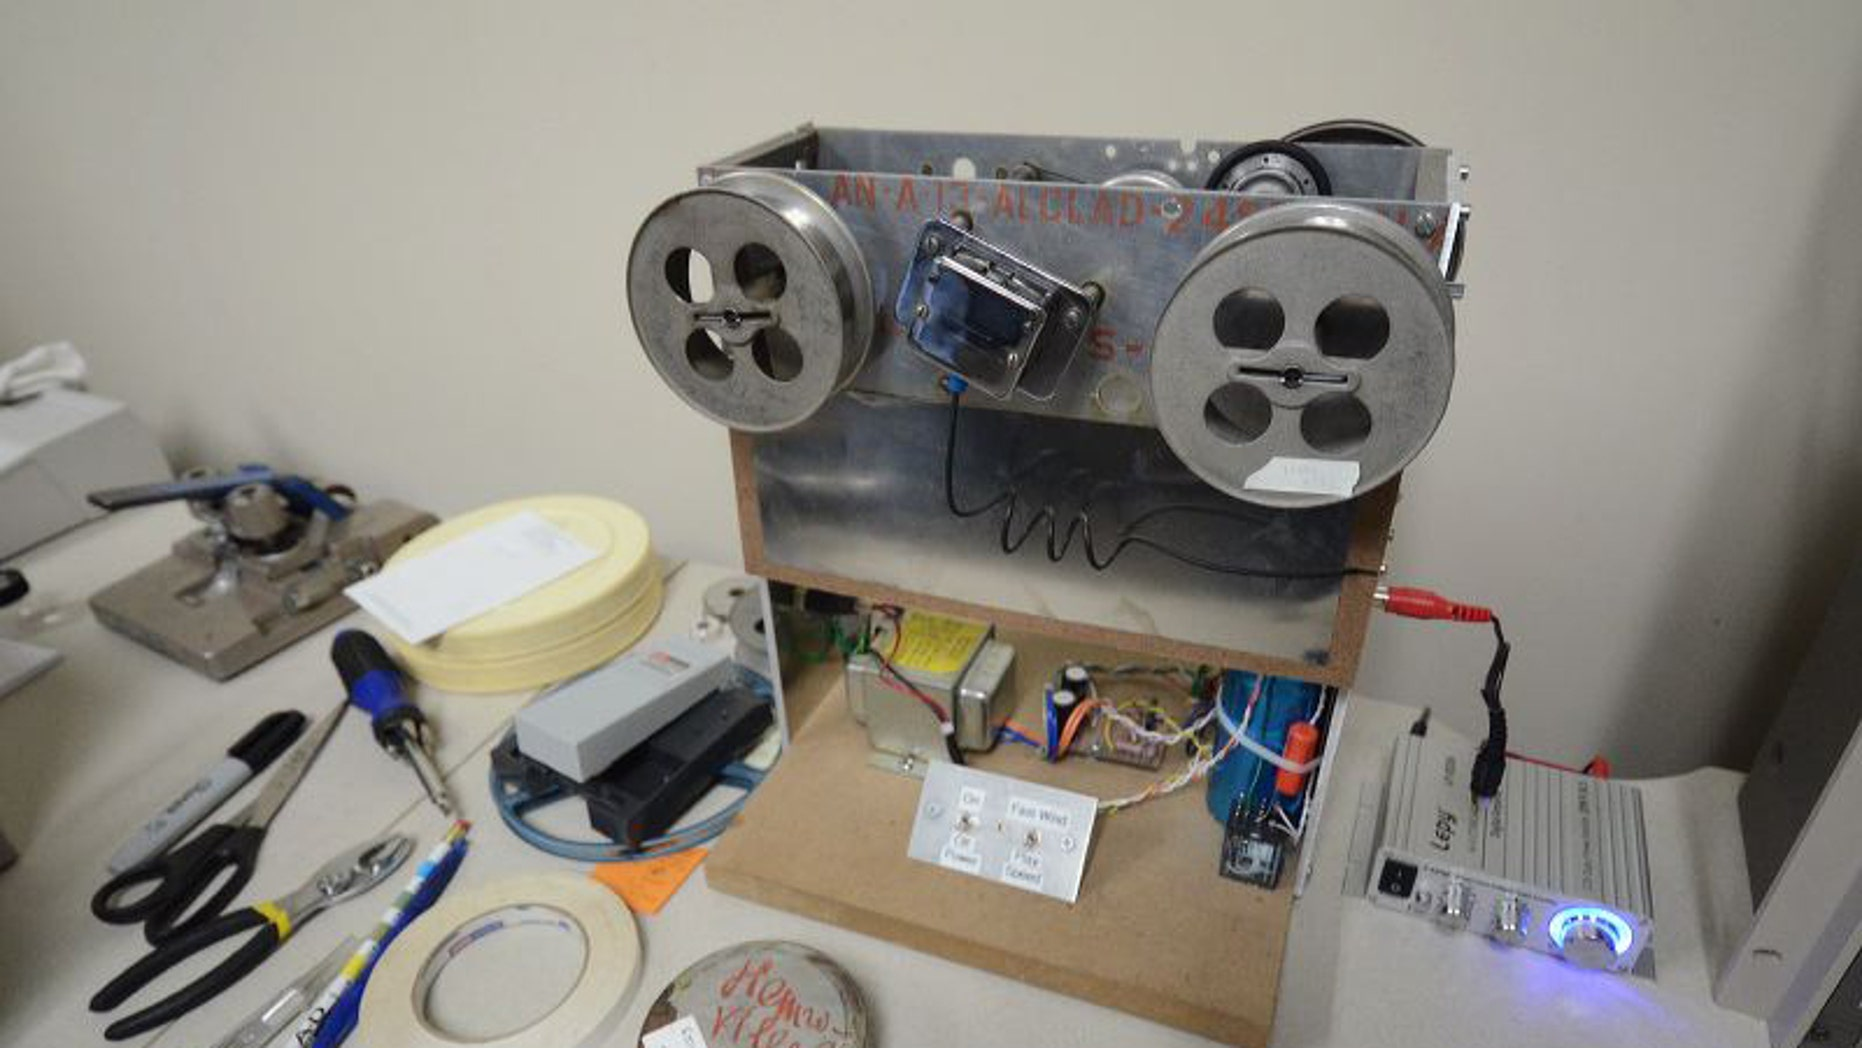 The wire recorder that, once modernized, released the voices recorded in song at a refugee camp in Henonville, France, decades earlier (The University of Akron).